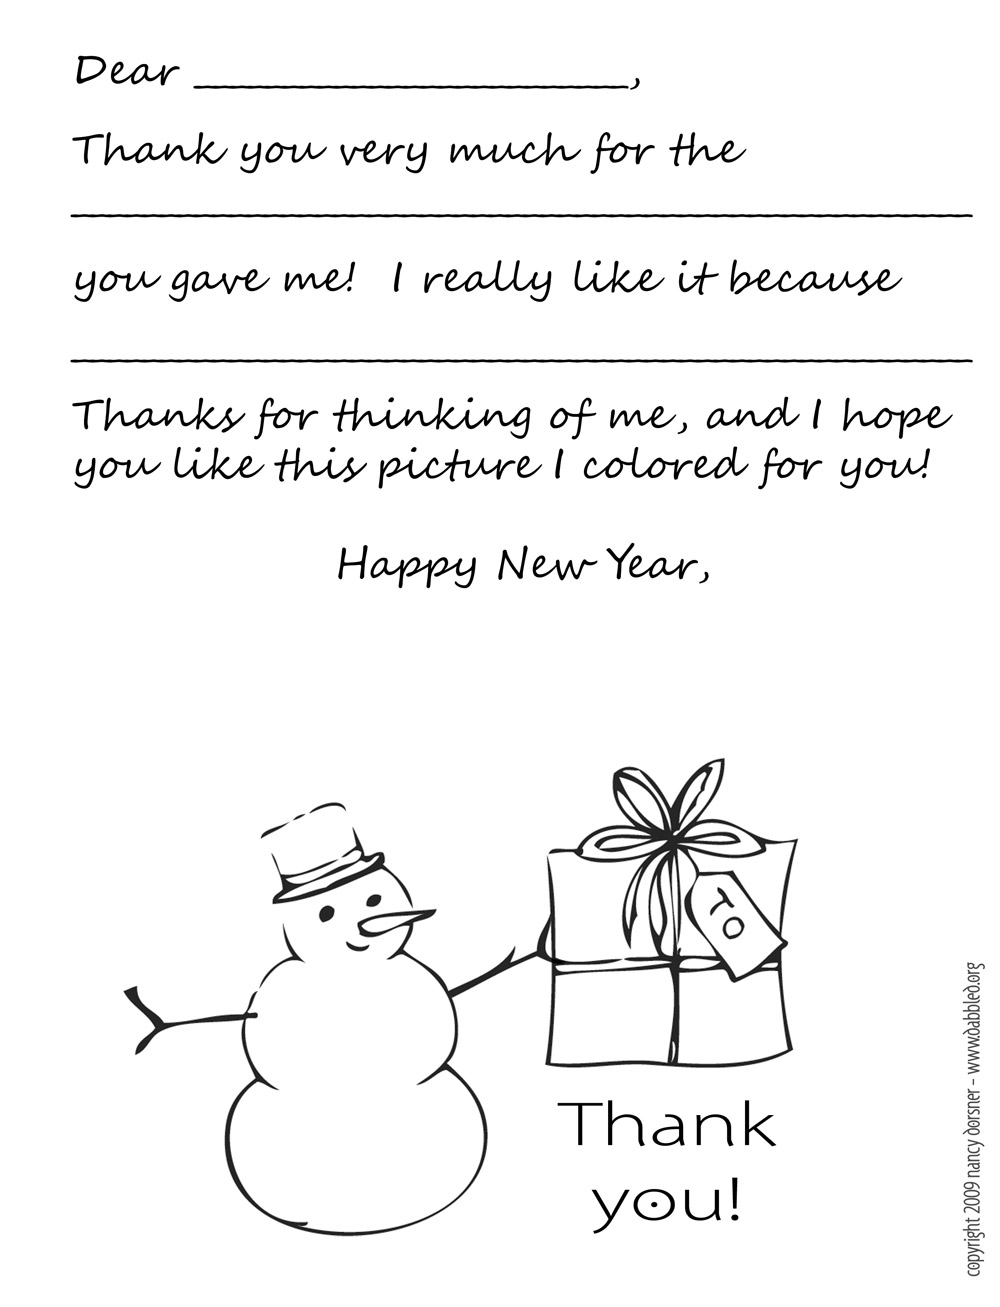 6 Images of Thank You Note Printable Template